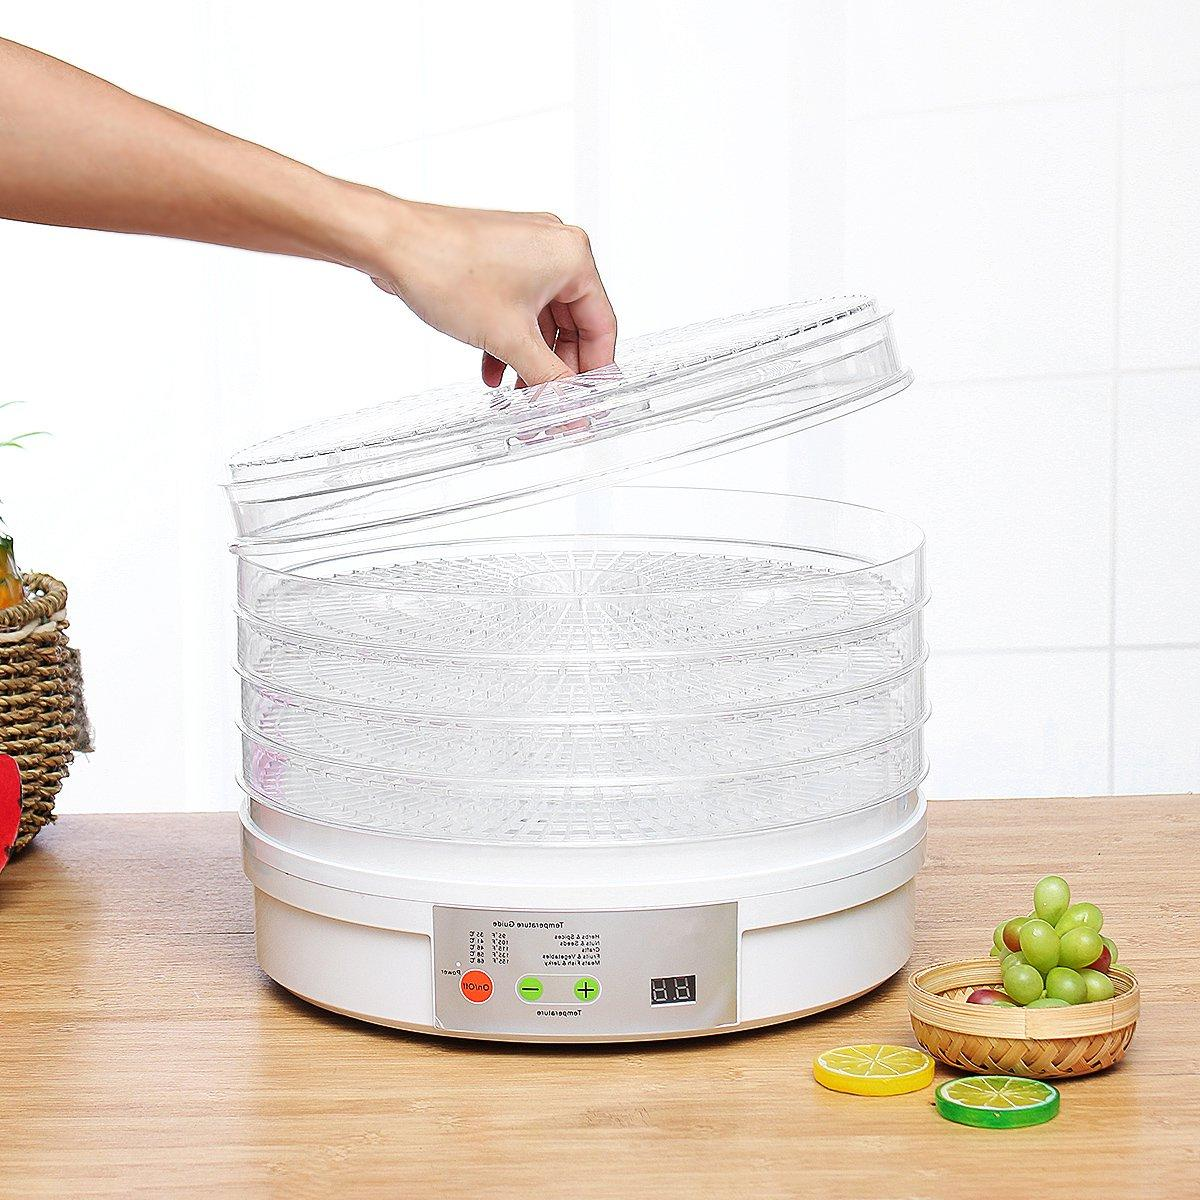 5 Trays <font><b>Food</b></font> AS Digital <font><b>Food</b></font> <font><b>Dehydrator</b></font> Fruit Herb Drying Dried Fruit